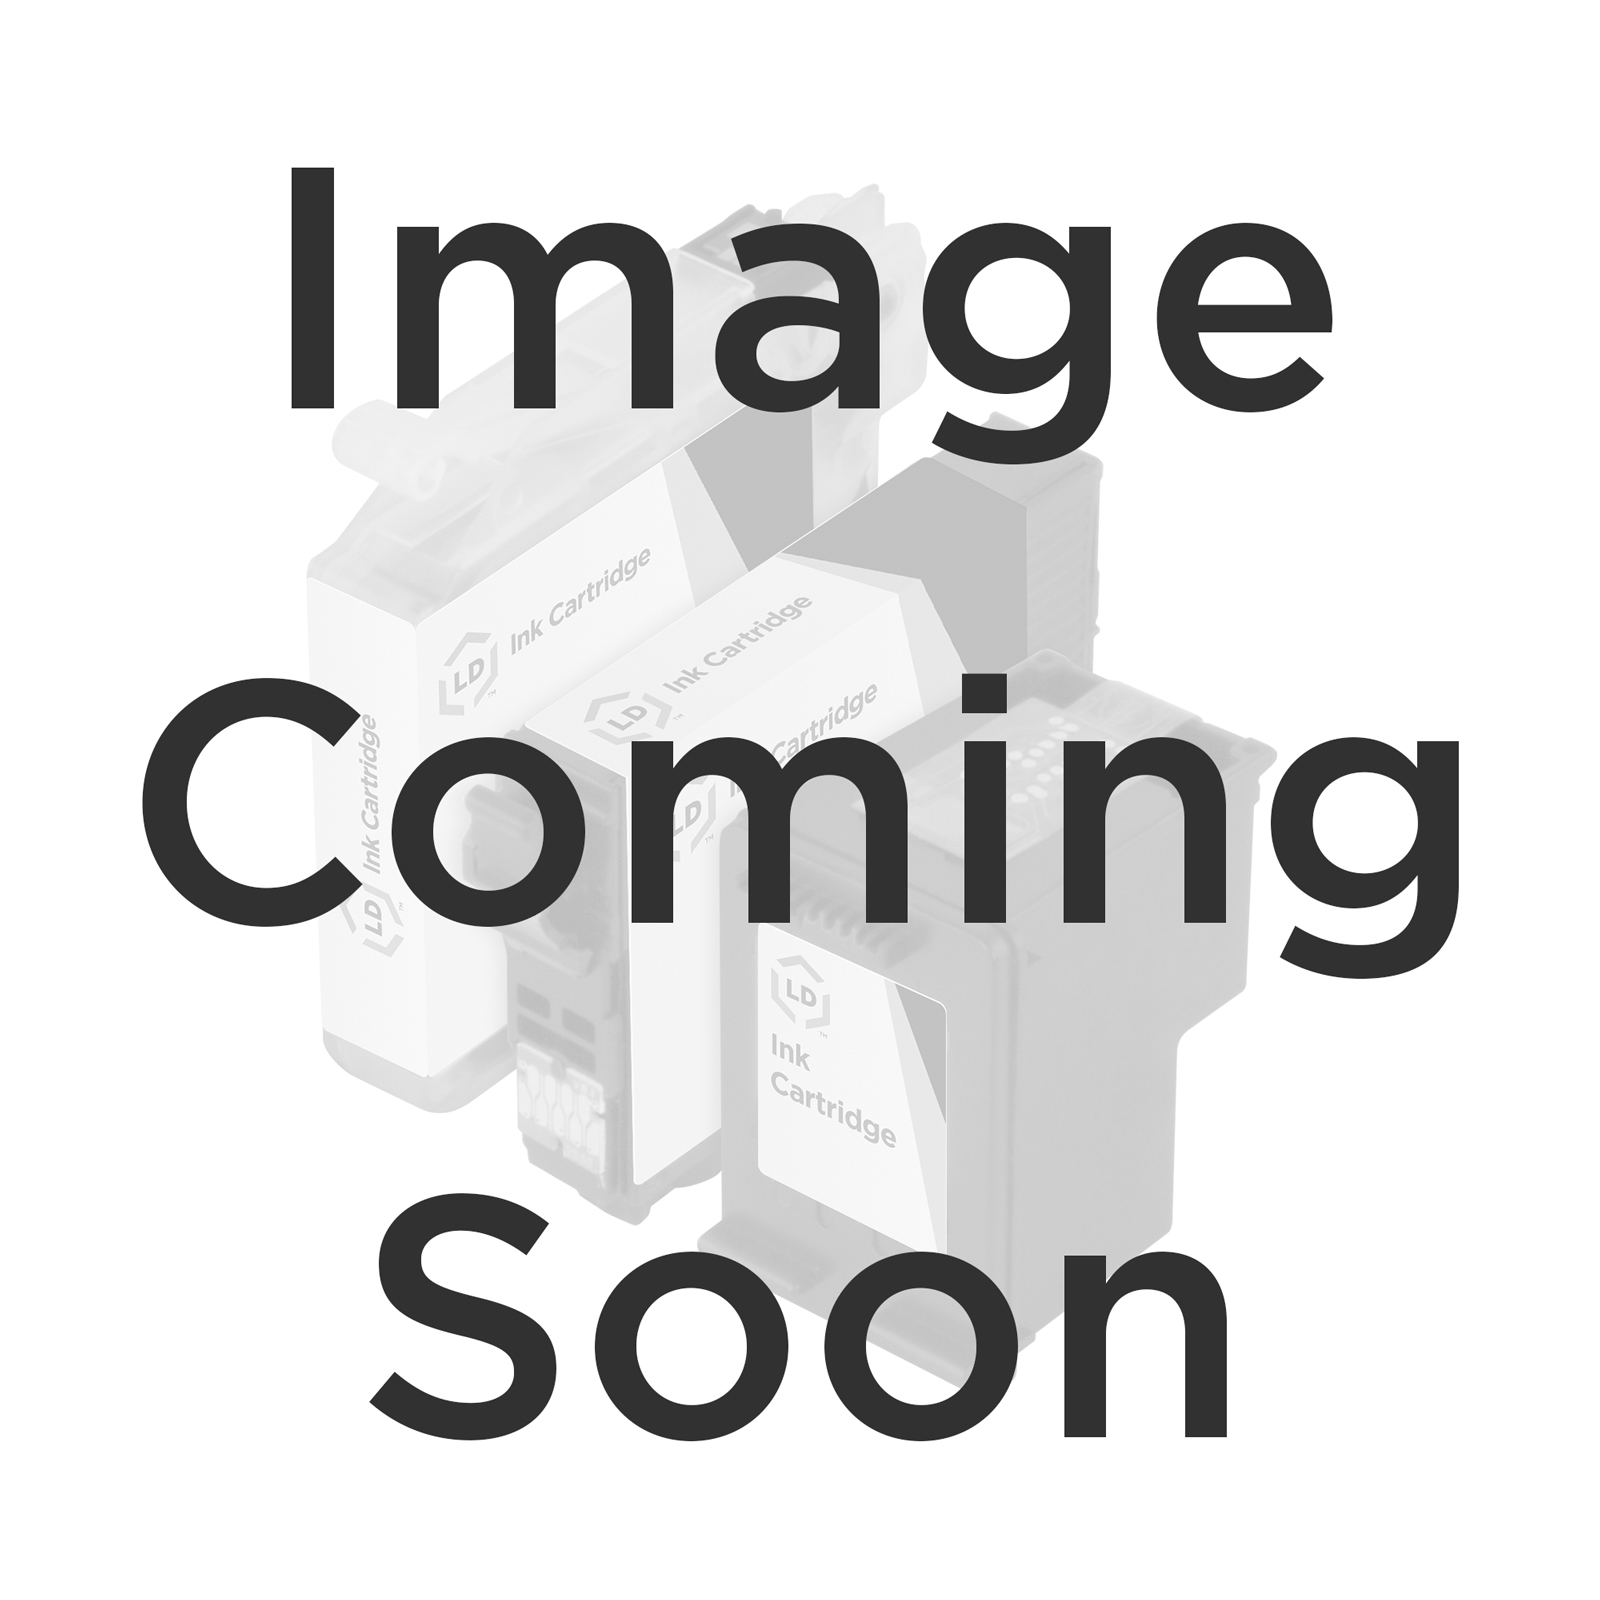 3M Command Forever Classic Hook - 1 per pack